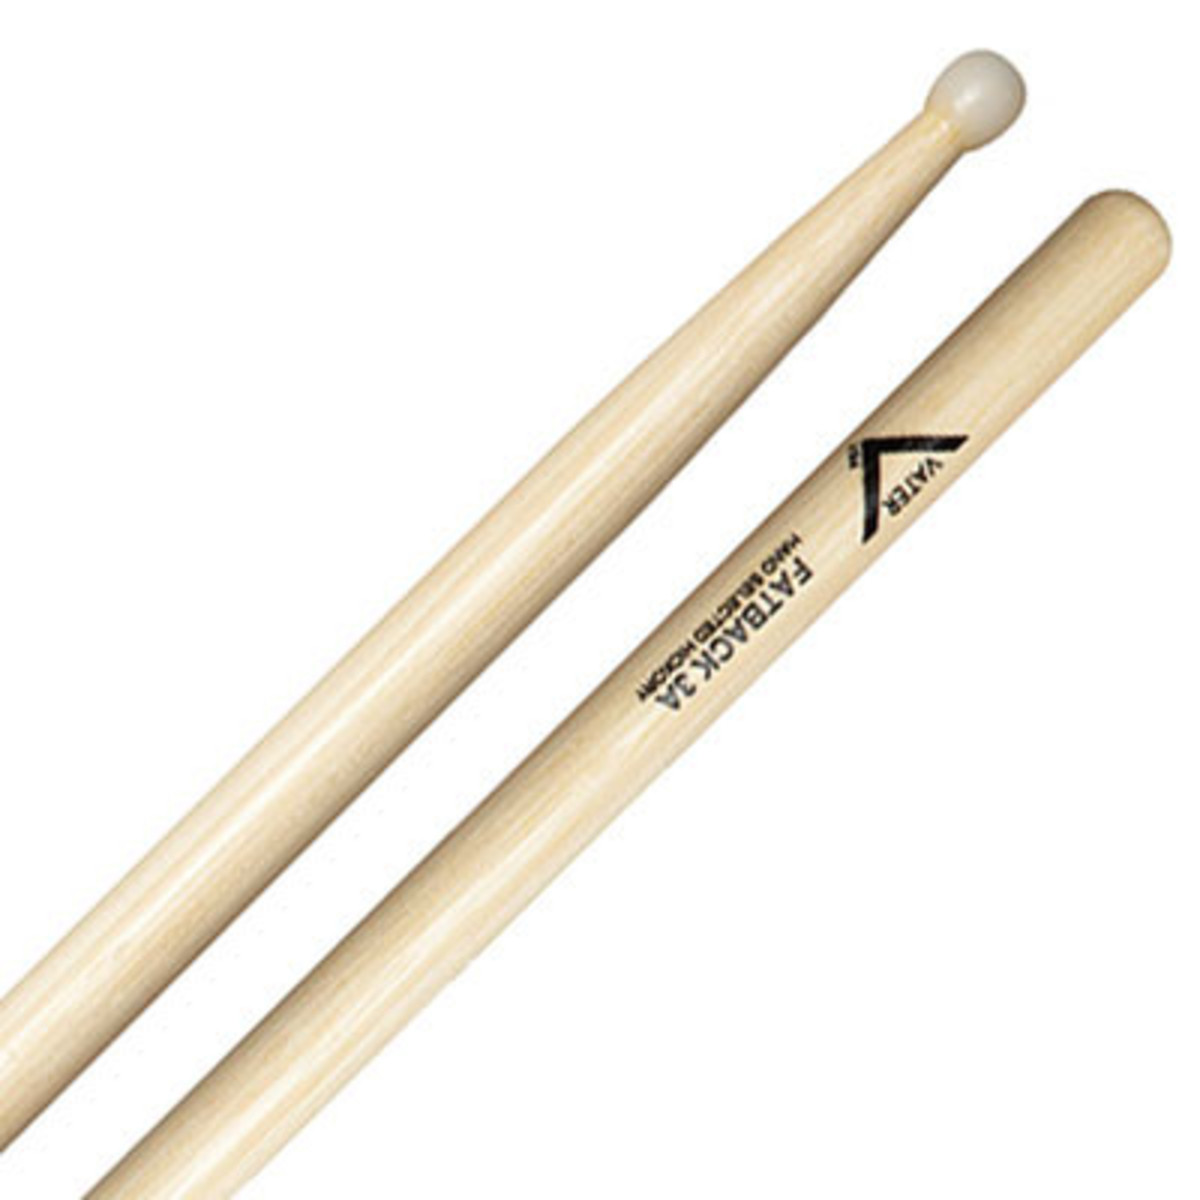 Vater hickory 3a fatback bacchette con punte in nylon a for Vater o bater